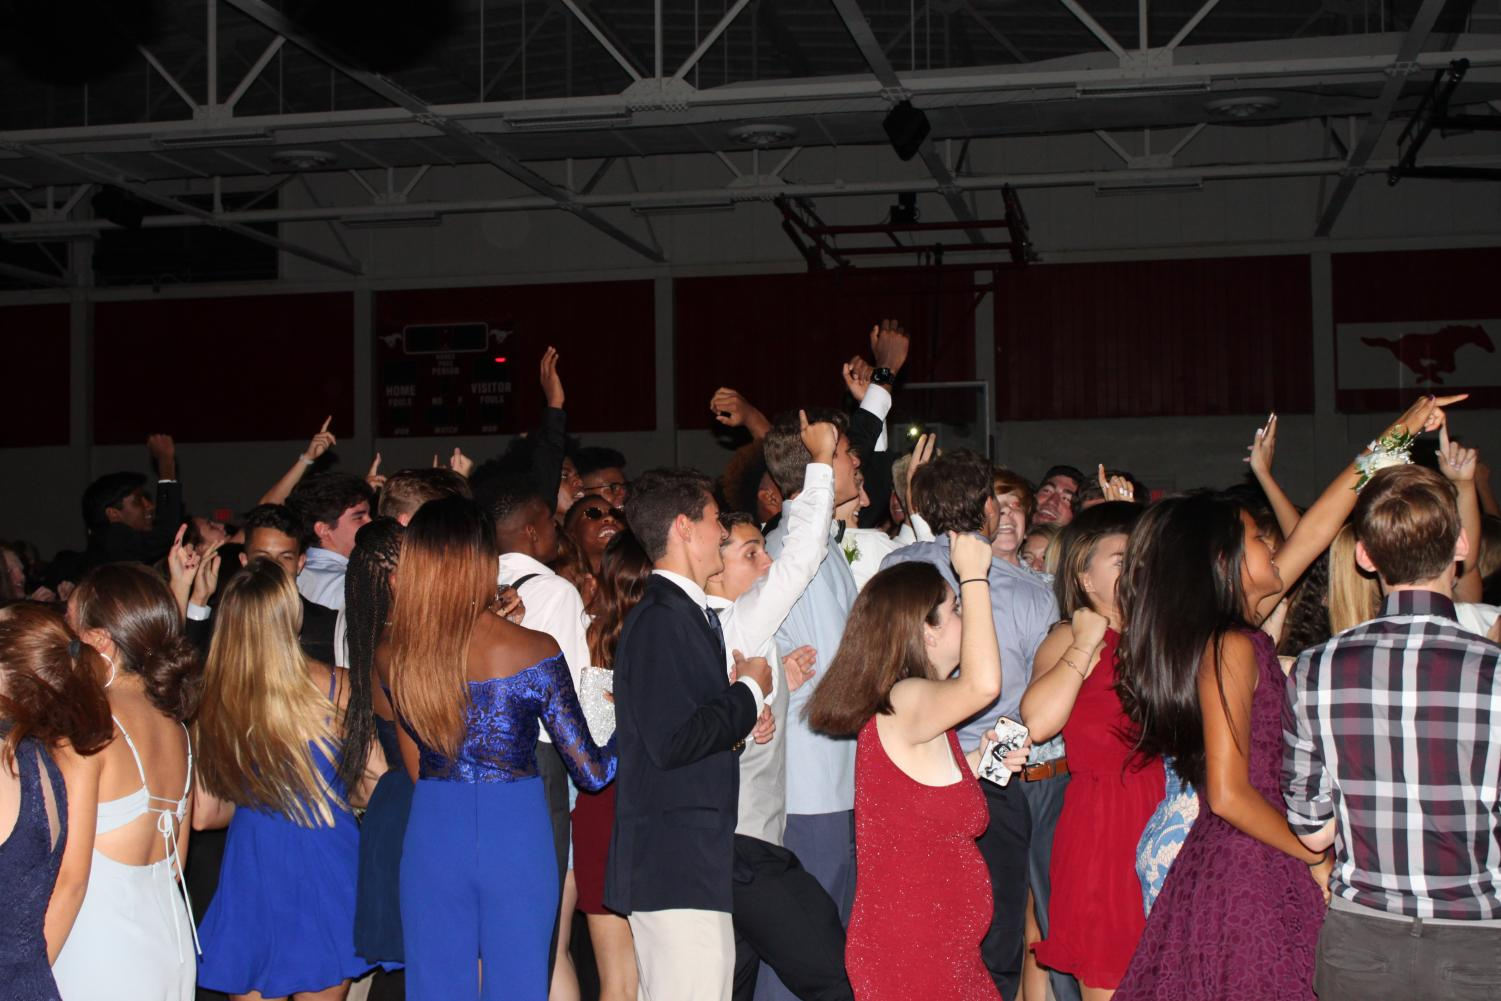 Students dancing at homecoming on Sat. Oct. 13.